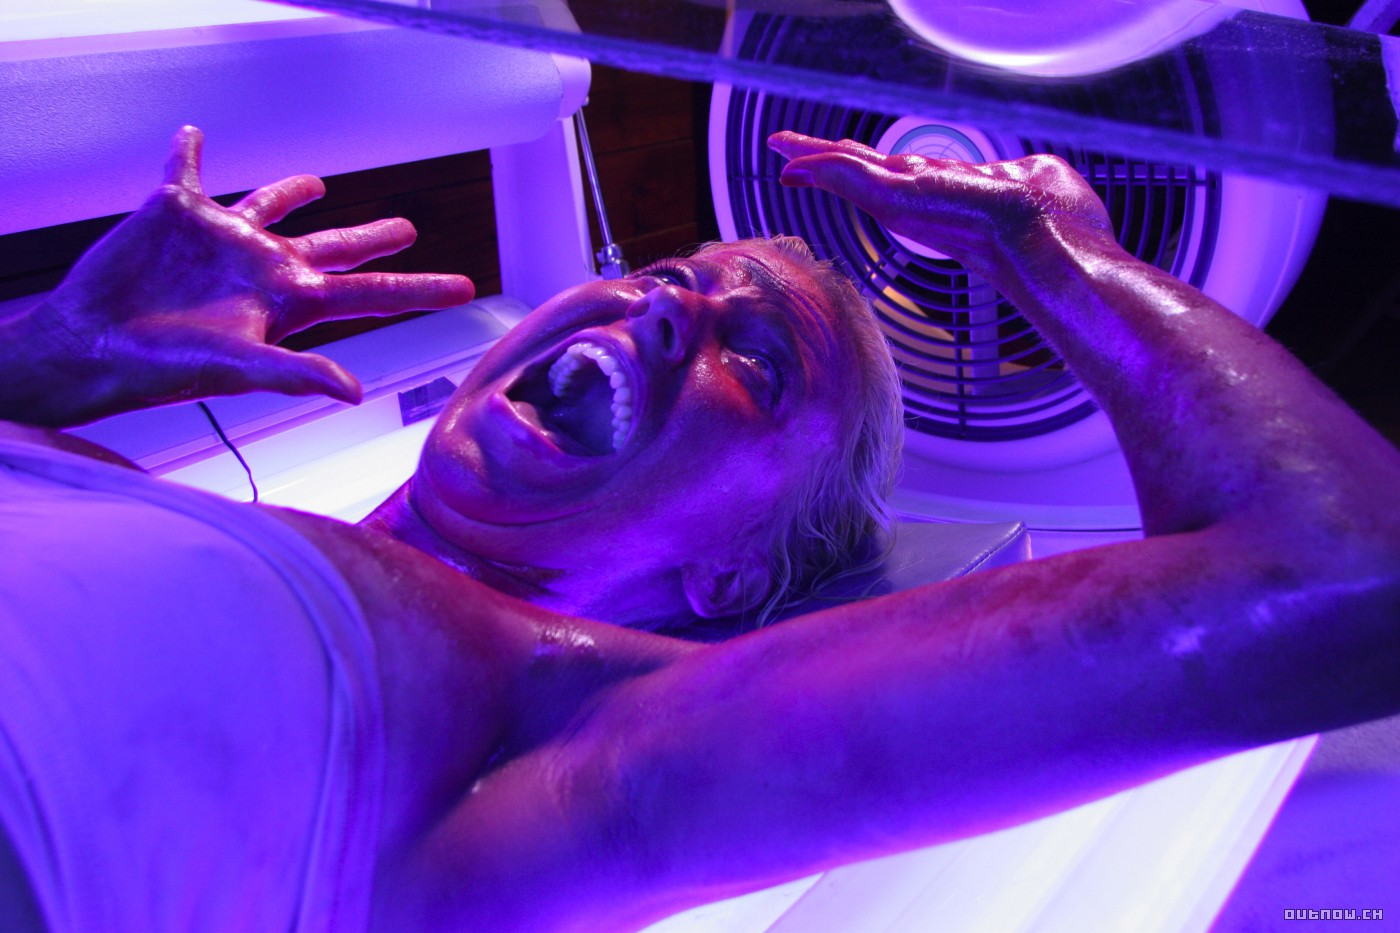 Tanning Bed How Bad Is It